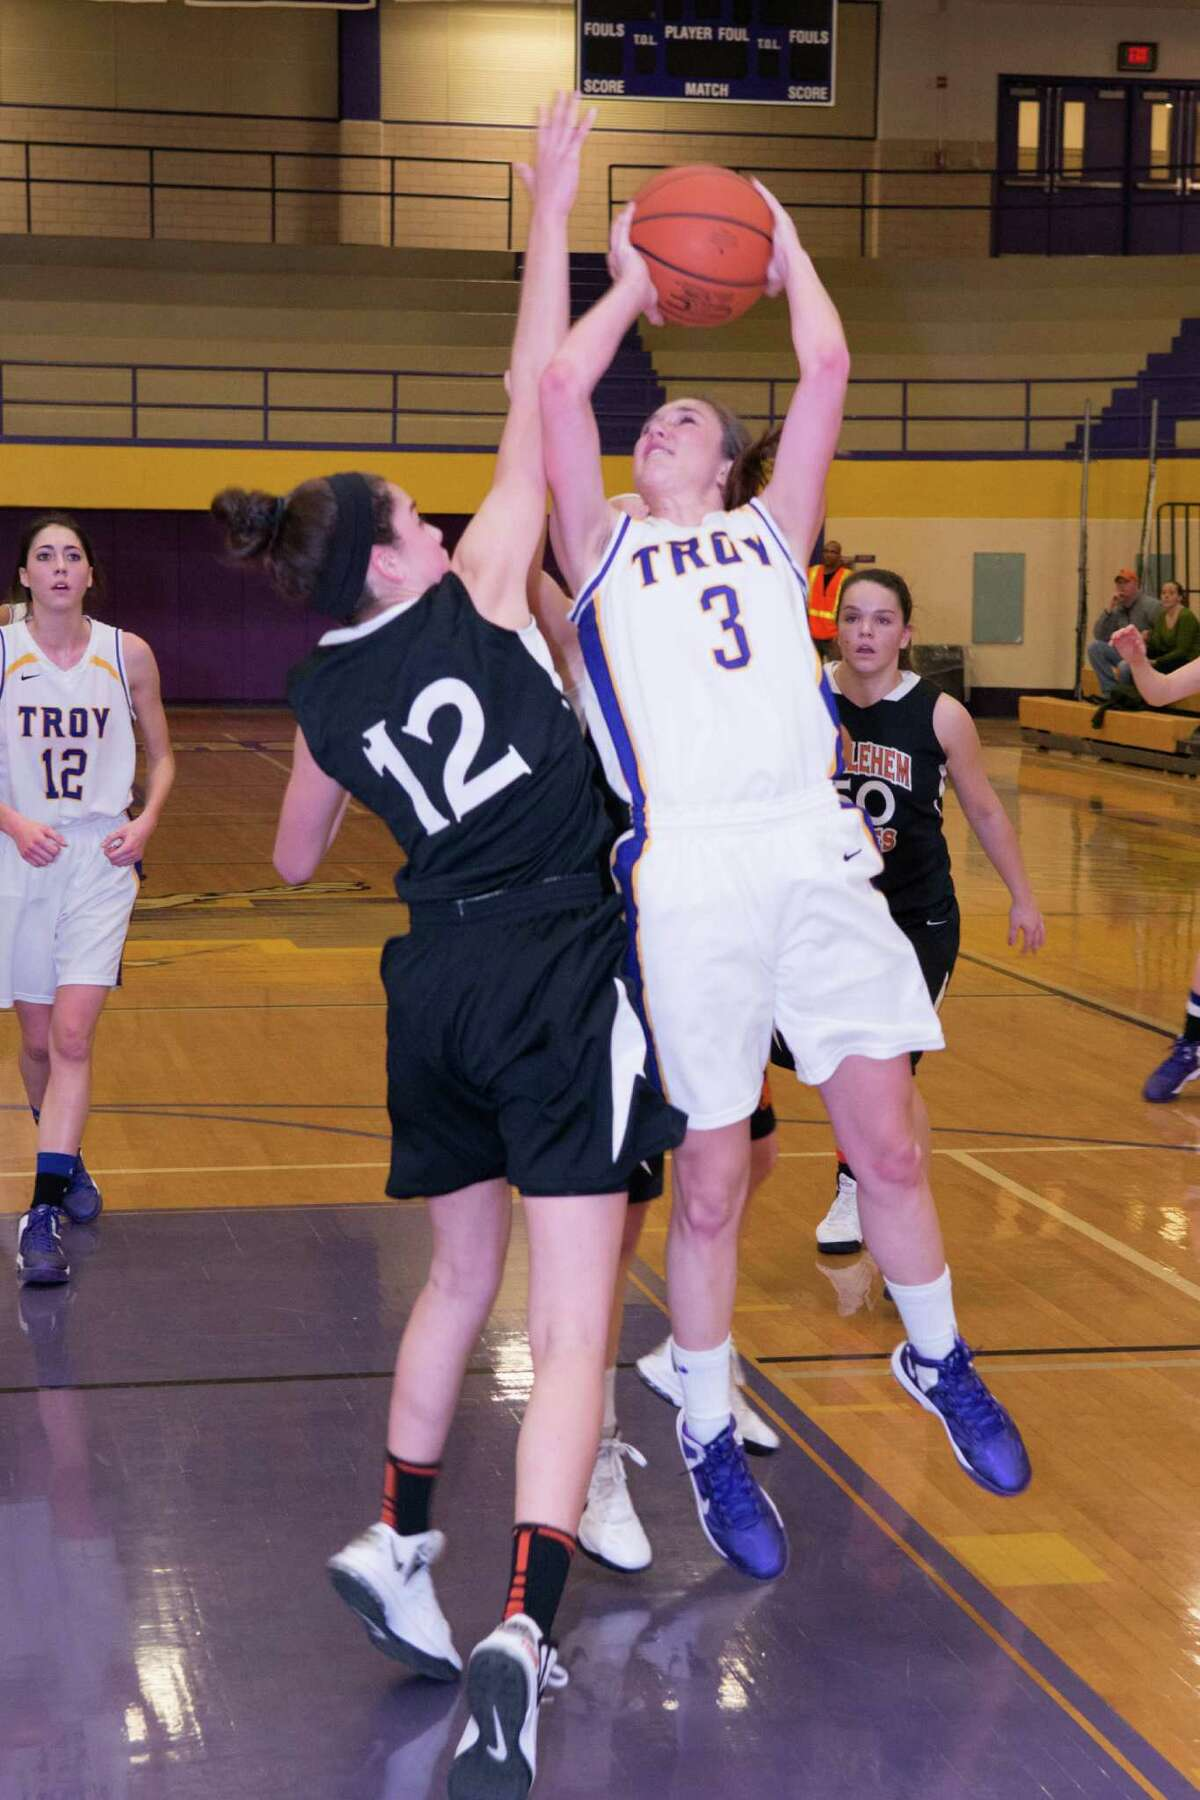 Mary Pattison of Troy shoots over Jenna Giacone of Bethlehem during their game Saturday, Dec. 29, 2012. (Shawn Morgan / Special to the Times Union)